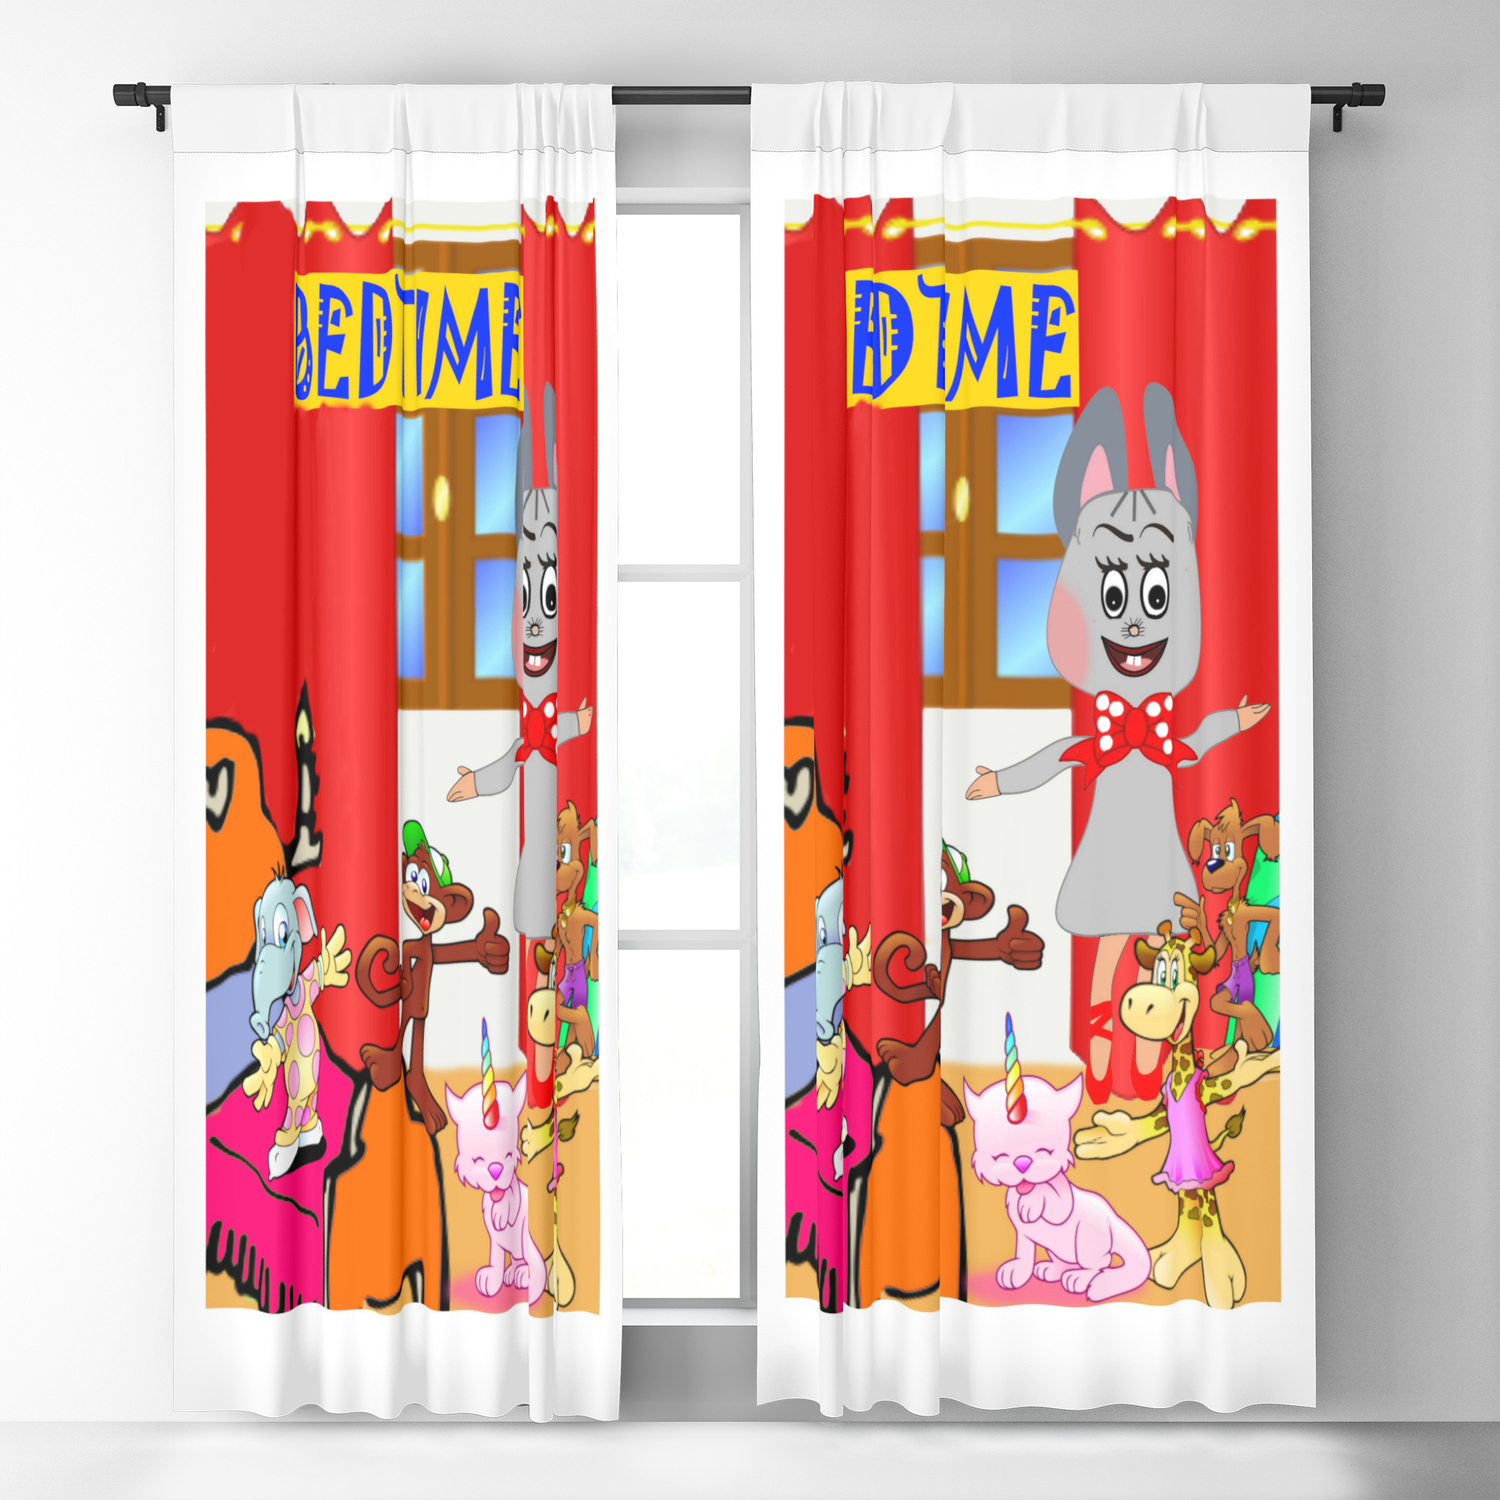 Kids children bedroom Blackout Curtain by angelajaywriter